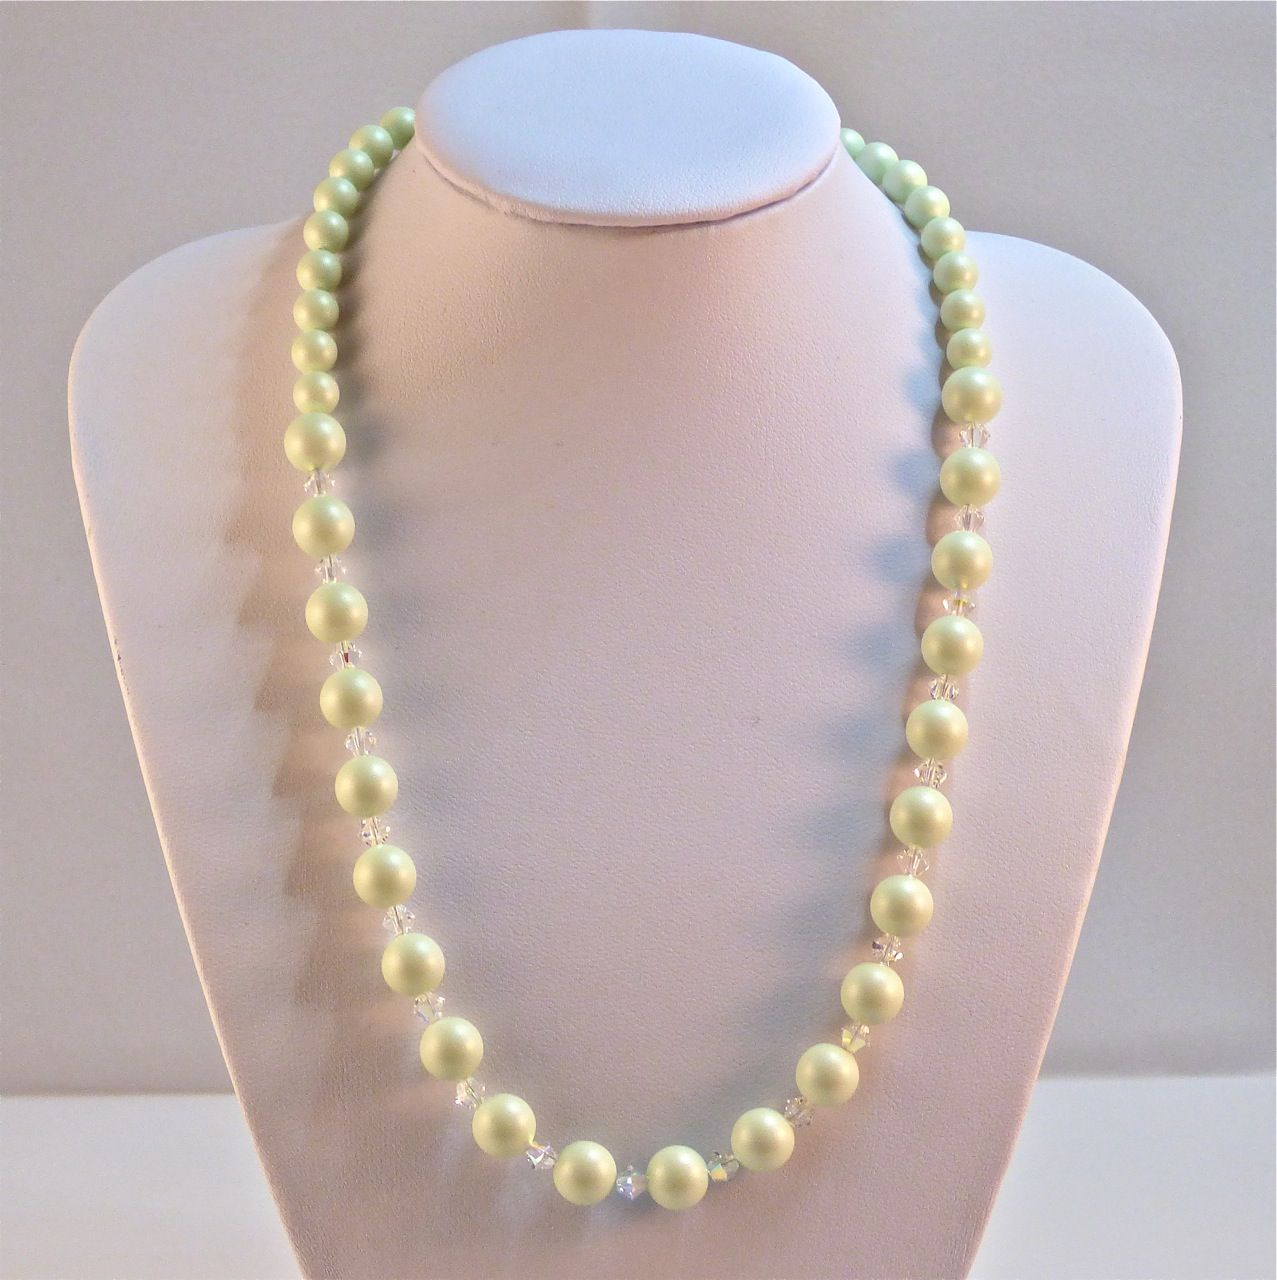 colorful pearls necklace beautiful chic pastel shells with sizes and sea shapes background pea of different photo